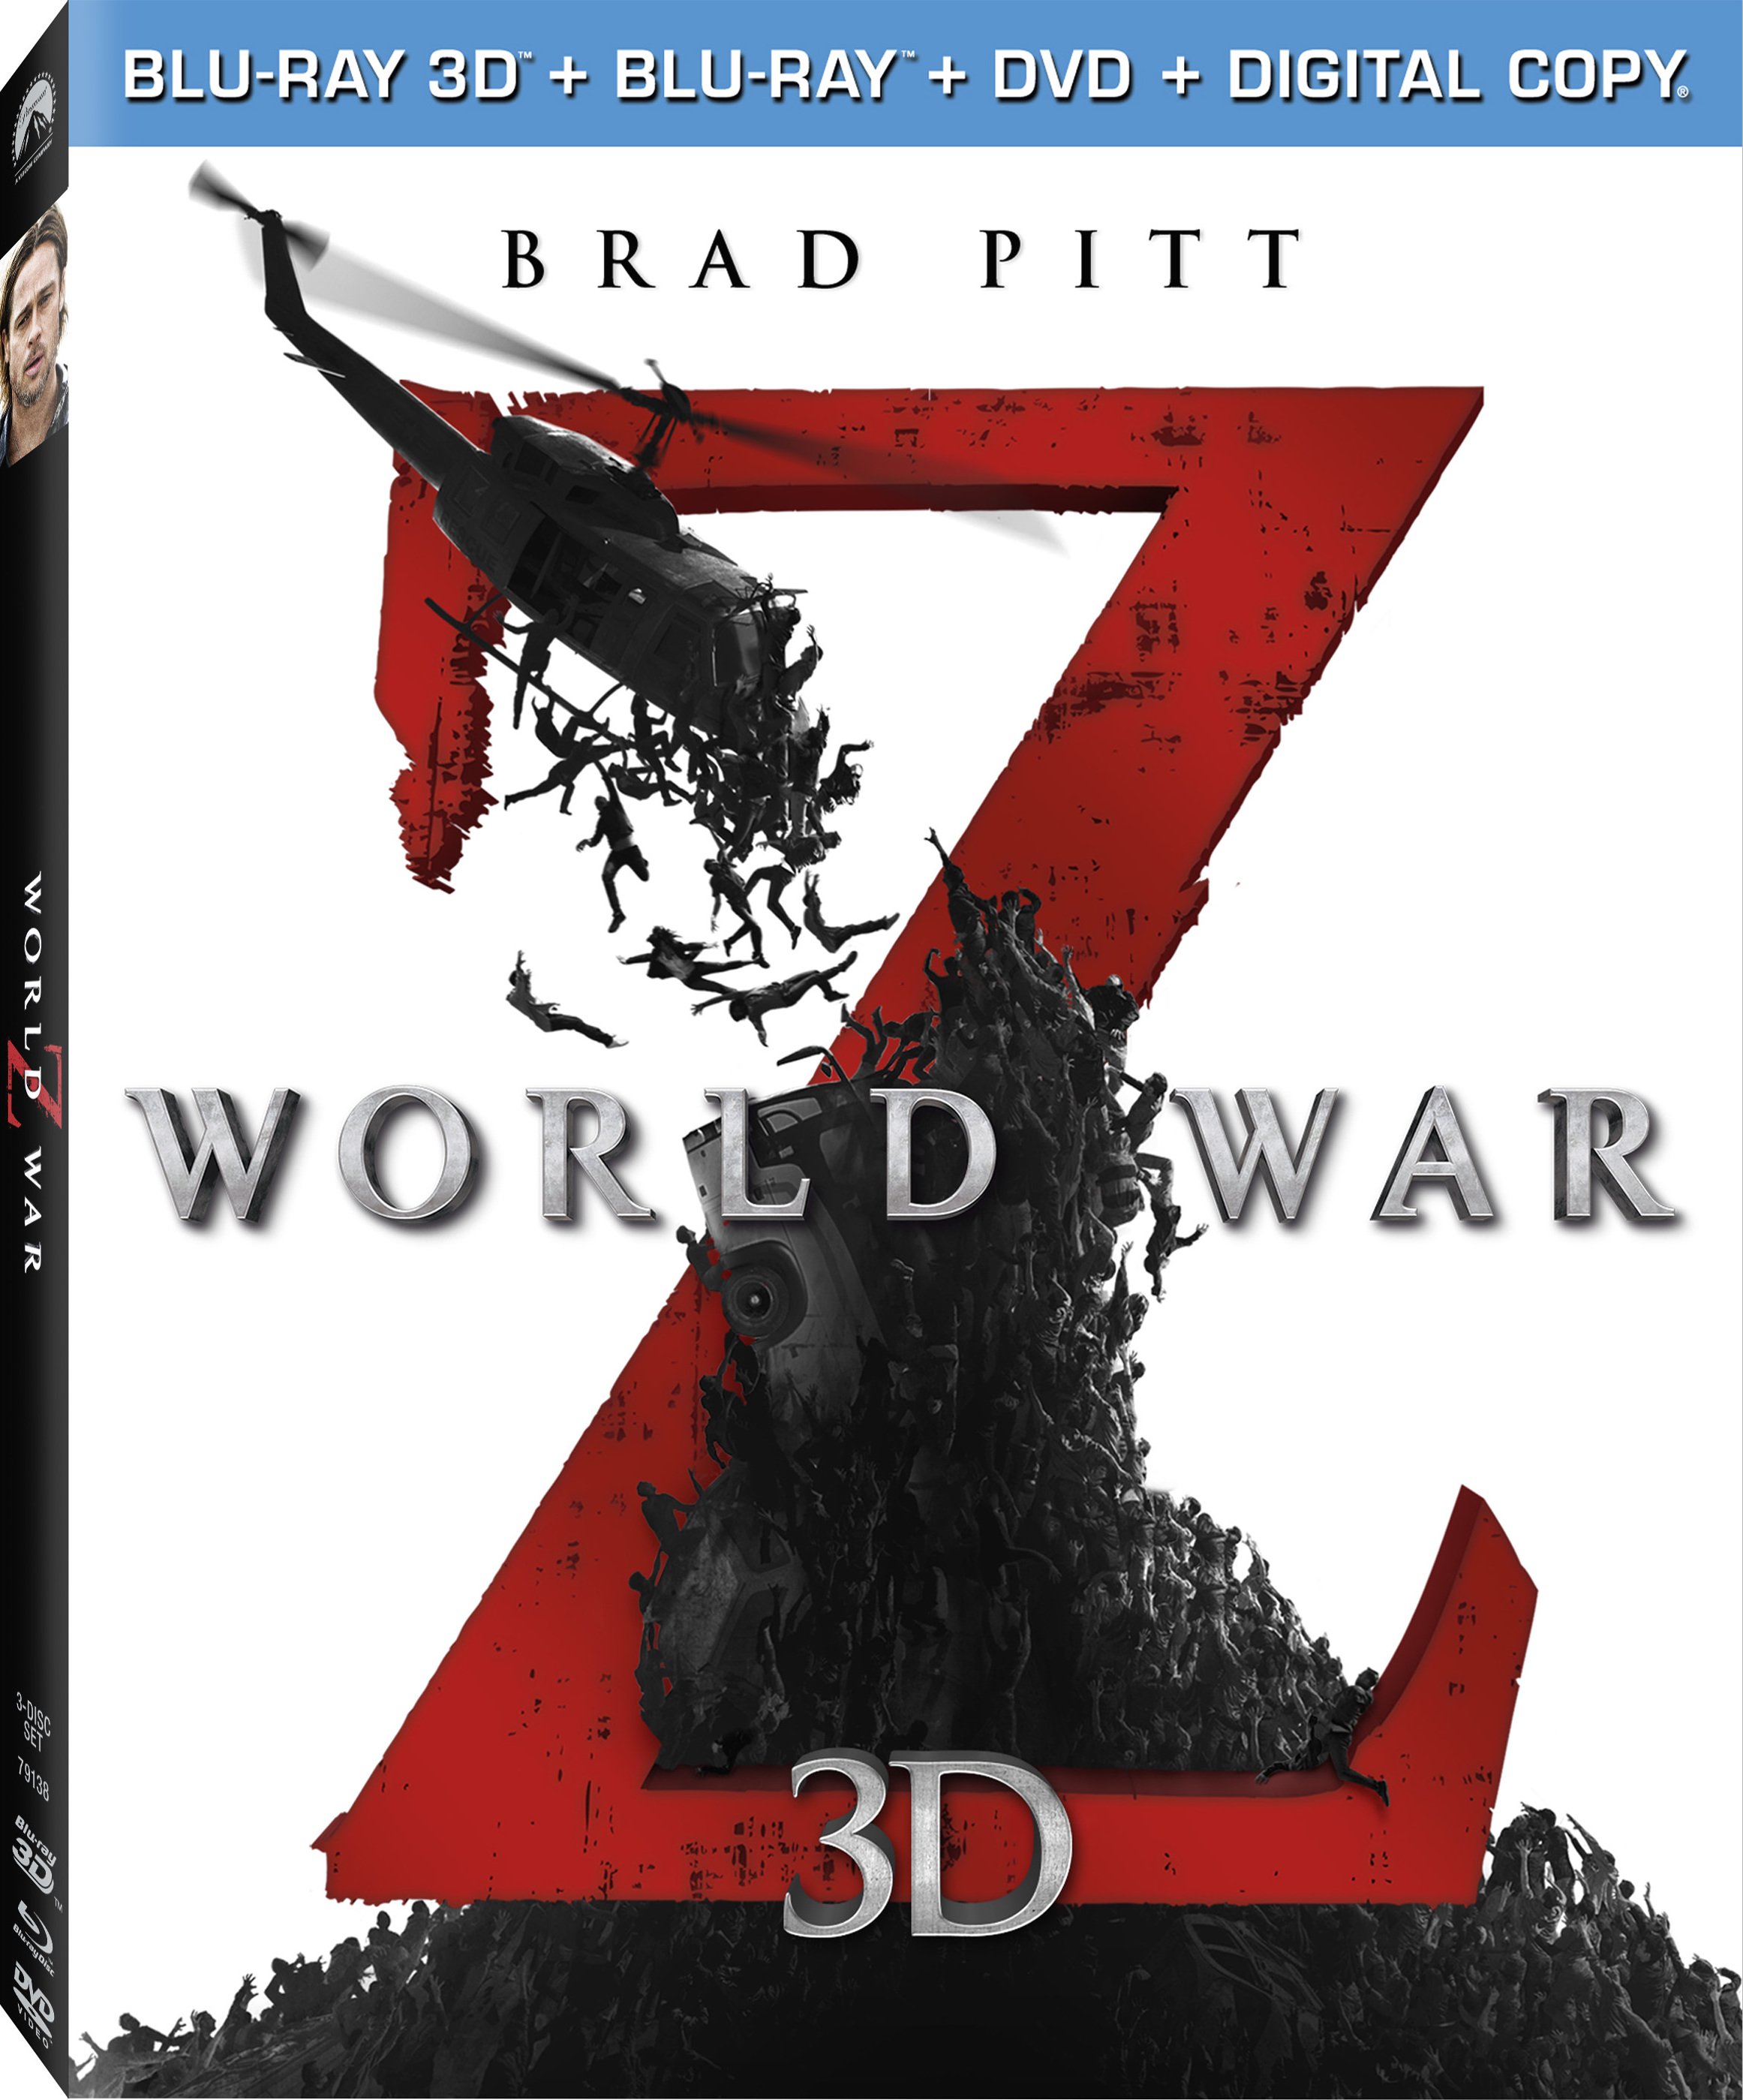 World War z Blu Ray Cover World War z 3d Blu-ray Cover